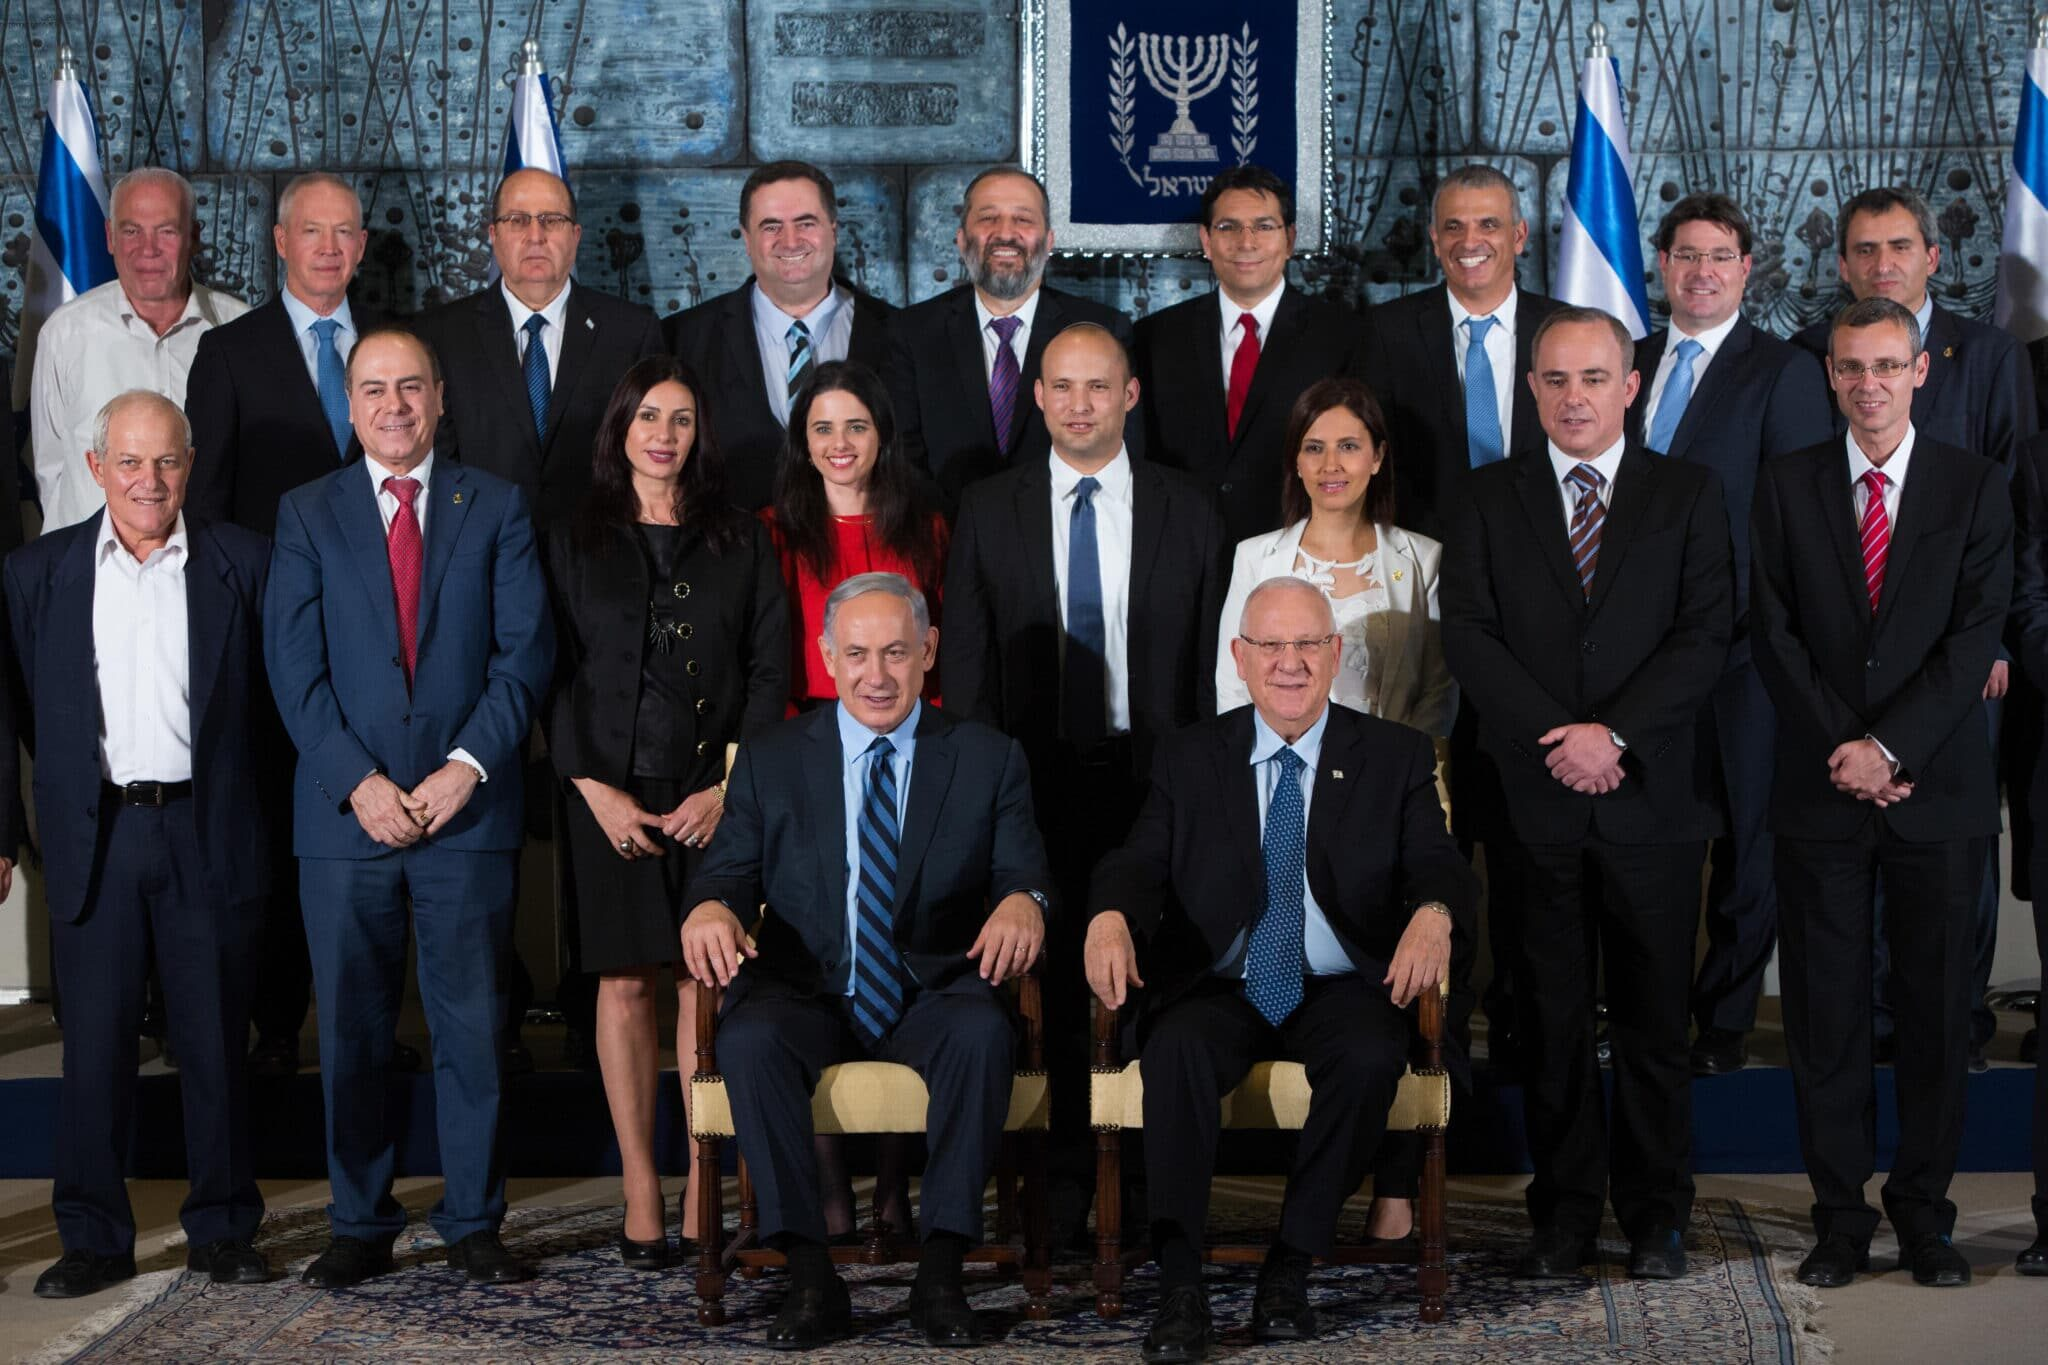 (150519) -- JERUSALEM, May 19, 2015 (Xinhua) -- Israeli President Reuven Rivlin (R, front), Prime Minister Benjamin Netanyahu (L, Front) and new cabinet members attend a photocall of the new Israeli government at the President's Residence in Jerusalem, on May 19, 2015. (Xinhua/JINI) Xinhua News Agency / eyevine Contact eyevine for more information about using this image: T: +44 (0) 20 8709 8709 E: info@eyevine.com http://www.eyevine.com